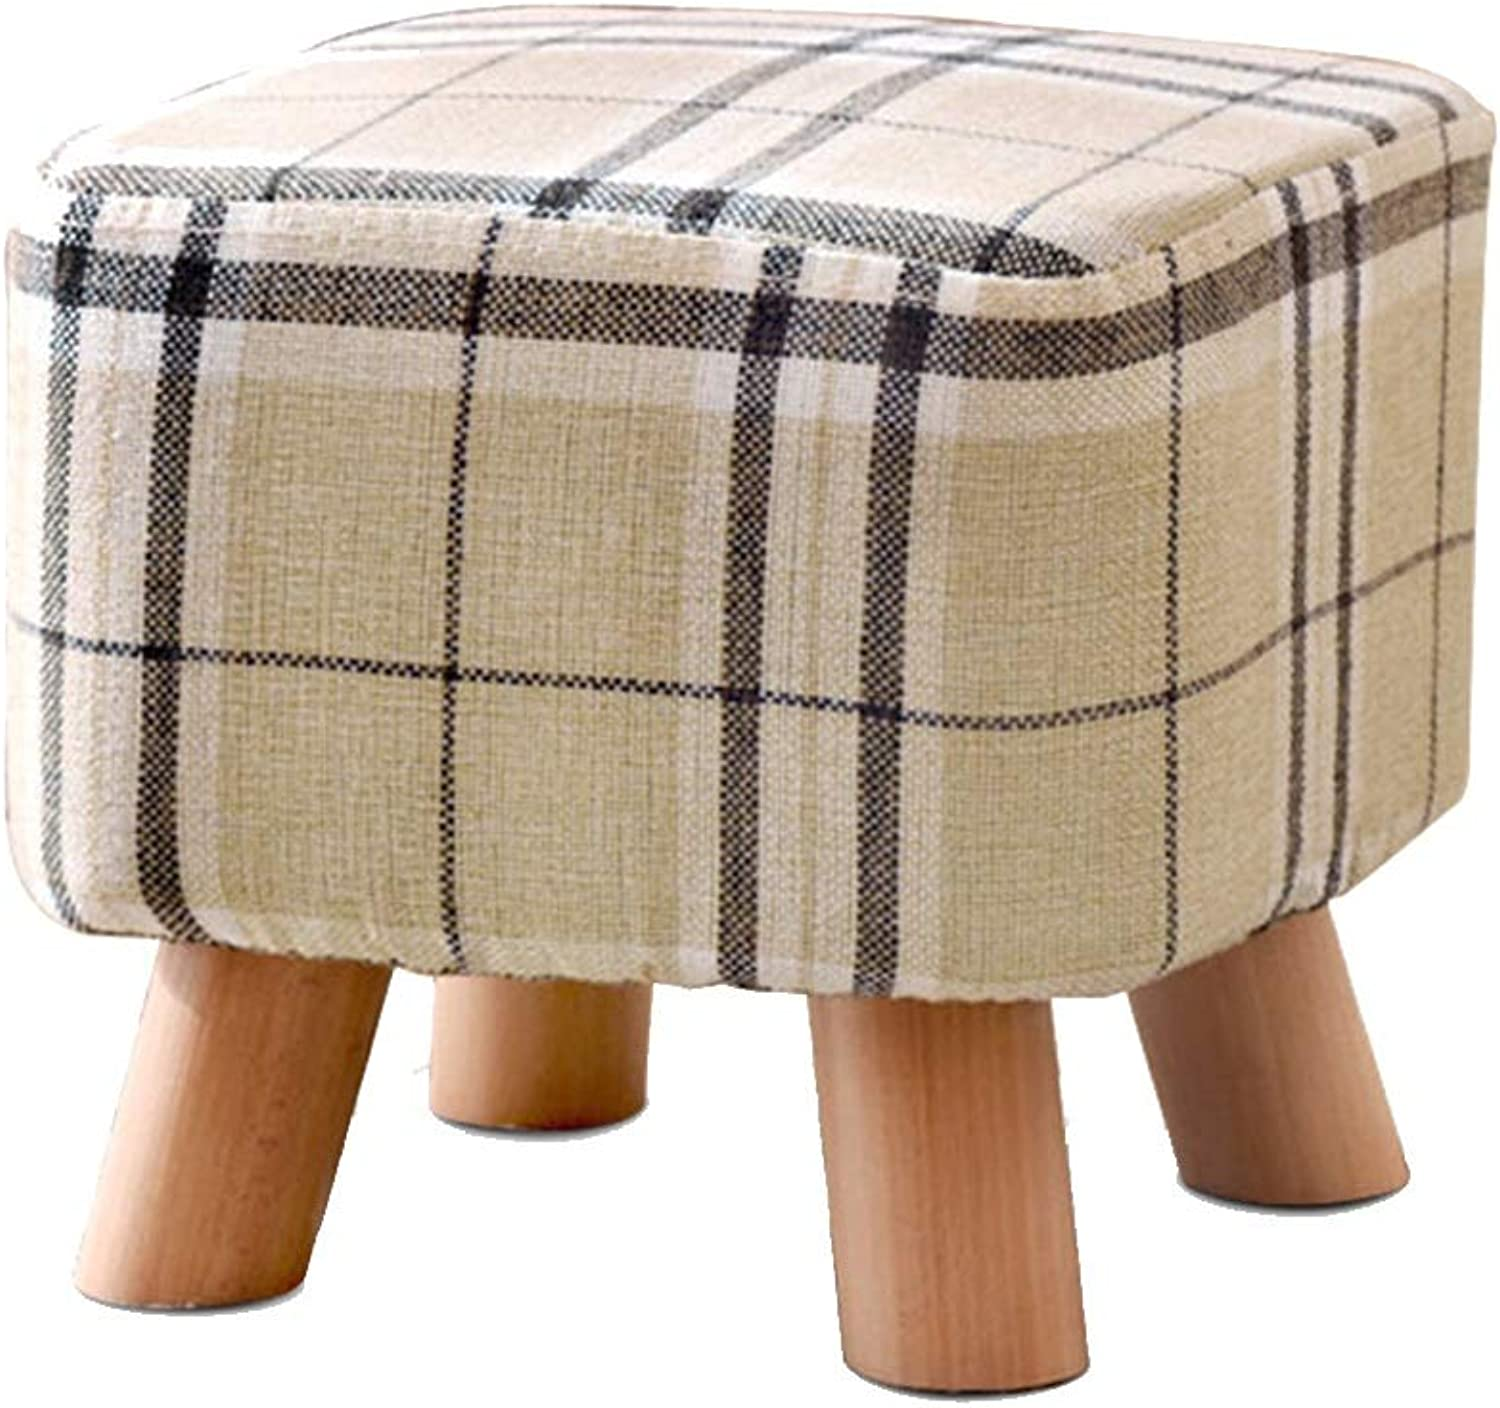 Small Stool-Four-Legged Solid Wood Stool Fabric Fabrics Yan Yan Fangduan Stools for shoes Benches FENPING (color   Stripe, Size   28  26cm)